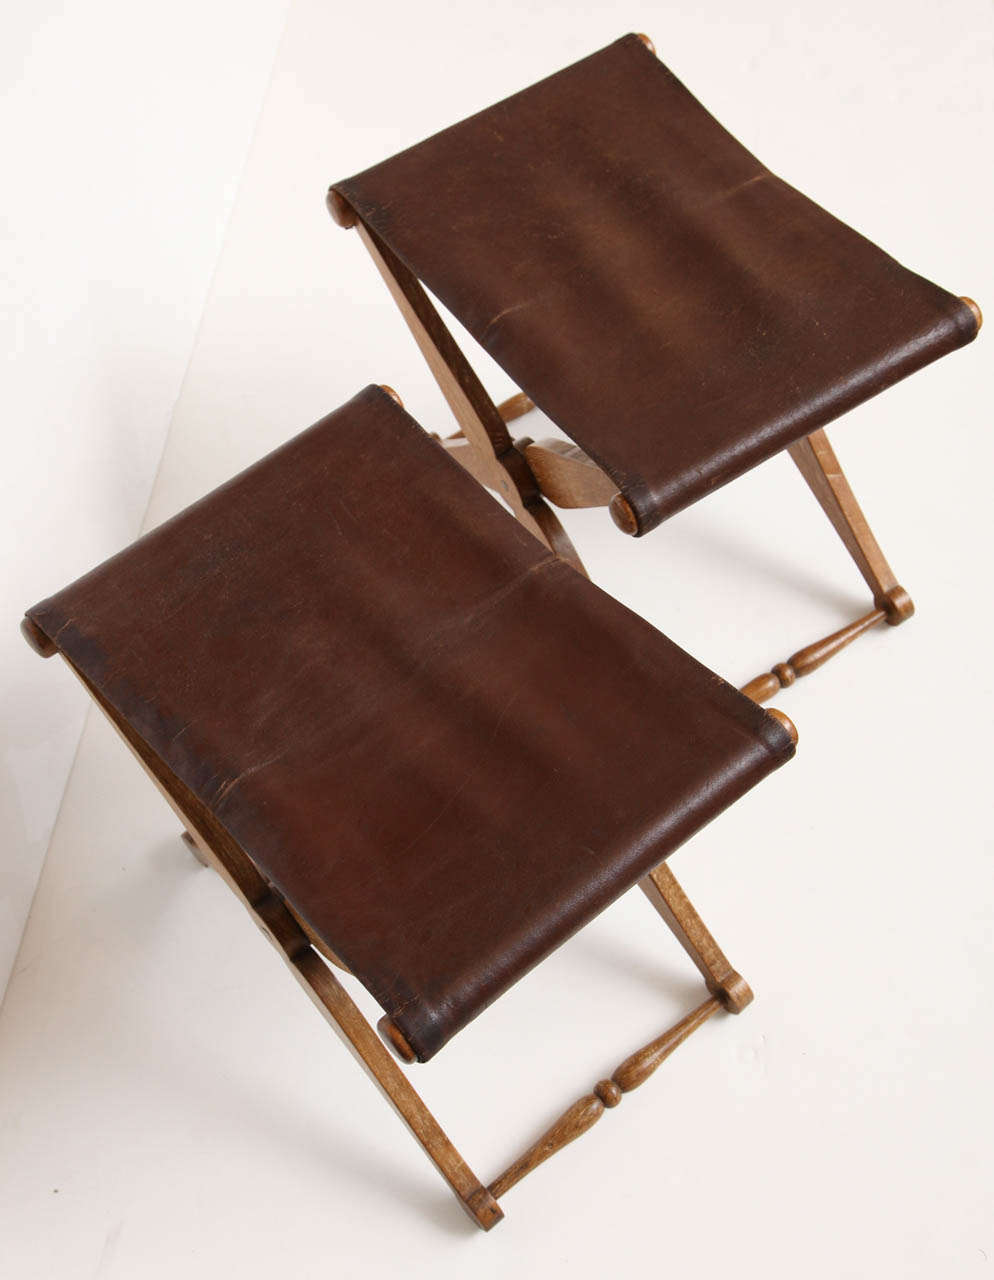 Pair Of Limed Oak And Leather Folding Stools At 1stdibs